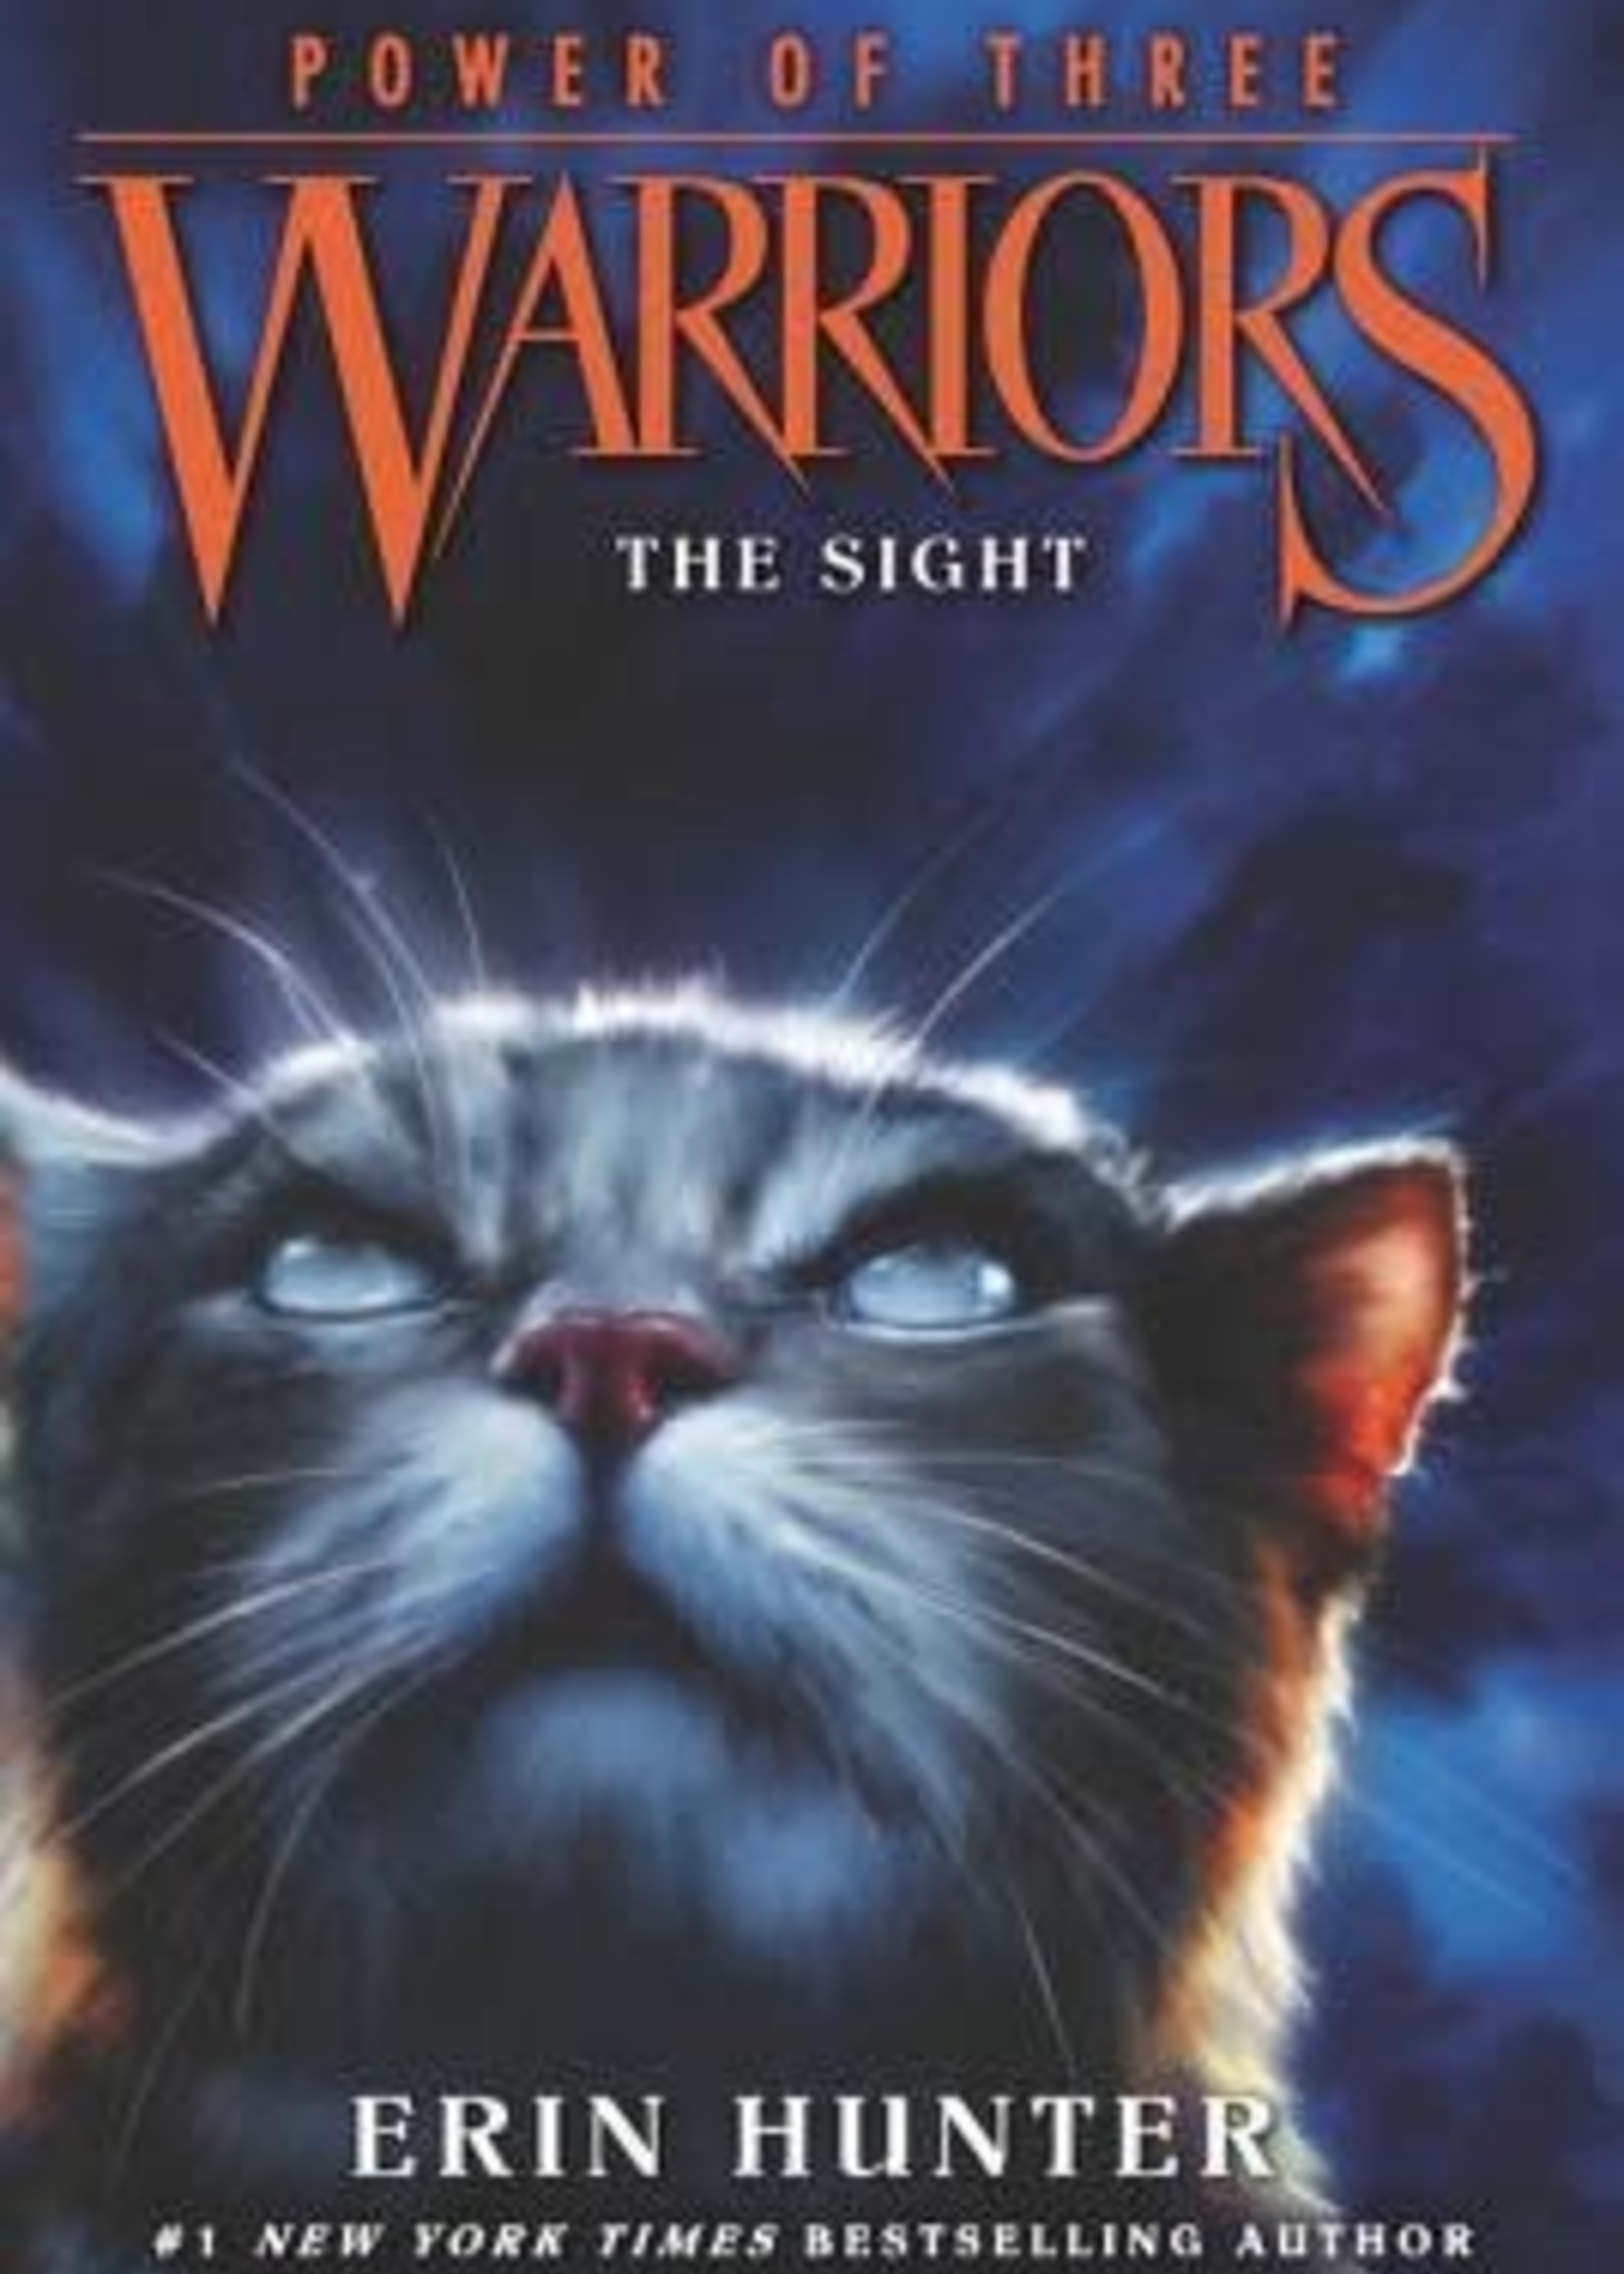 The Sight (Warriors: Power of Three #1) by Erin Hunter